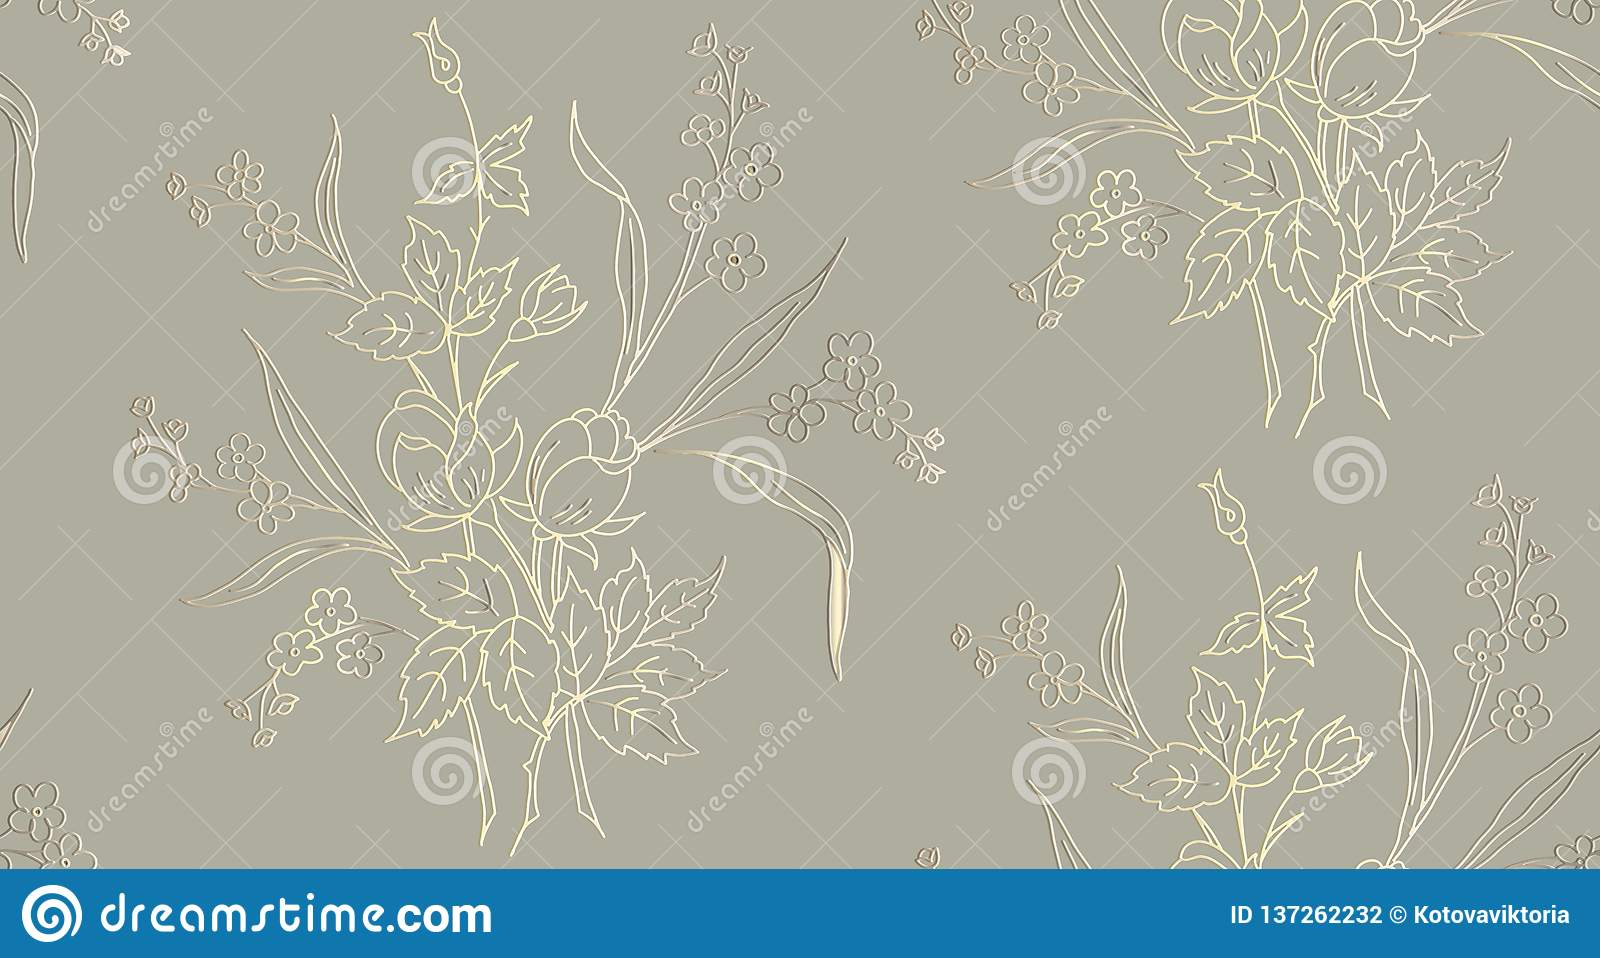 Floral seamless pattern can be used for wallpaper, textile printing, card. vector illustration of roses on light background.